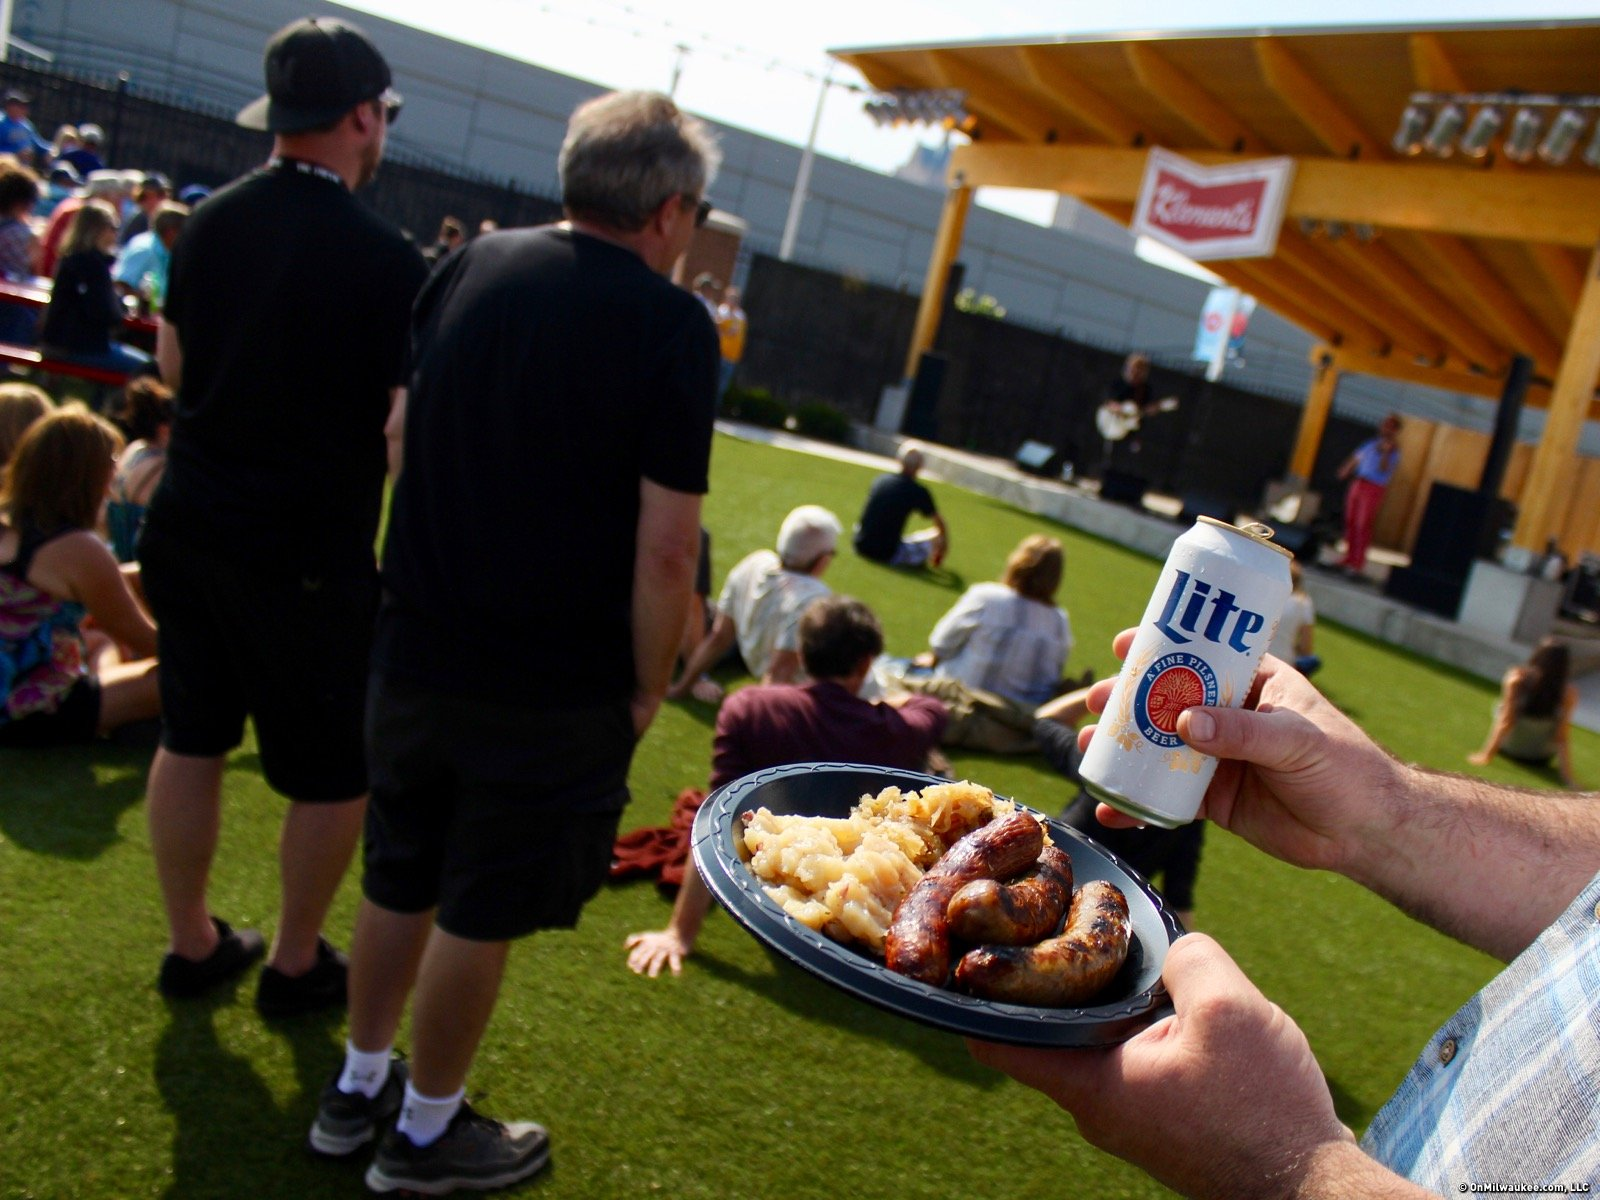 Beer here: Your ultimate guide to beer at Summerfest